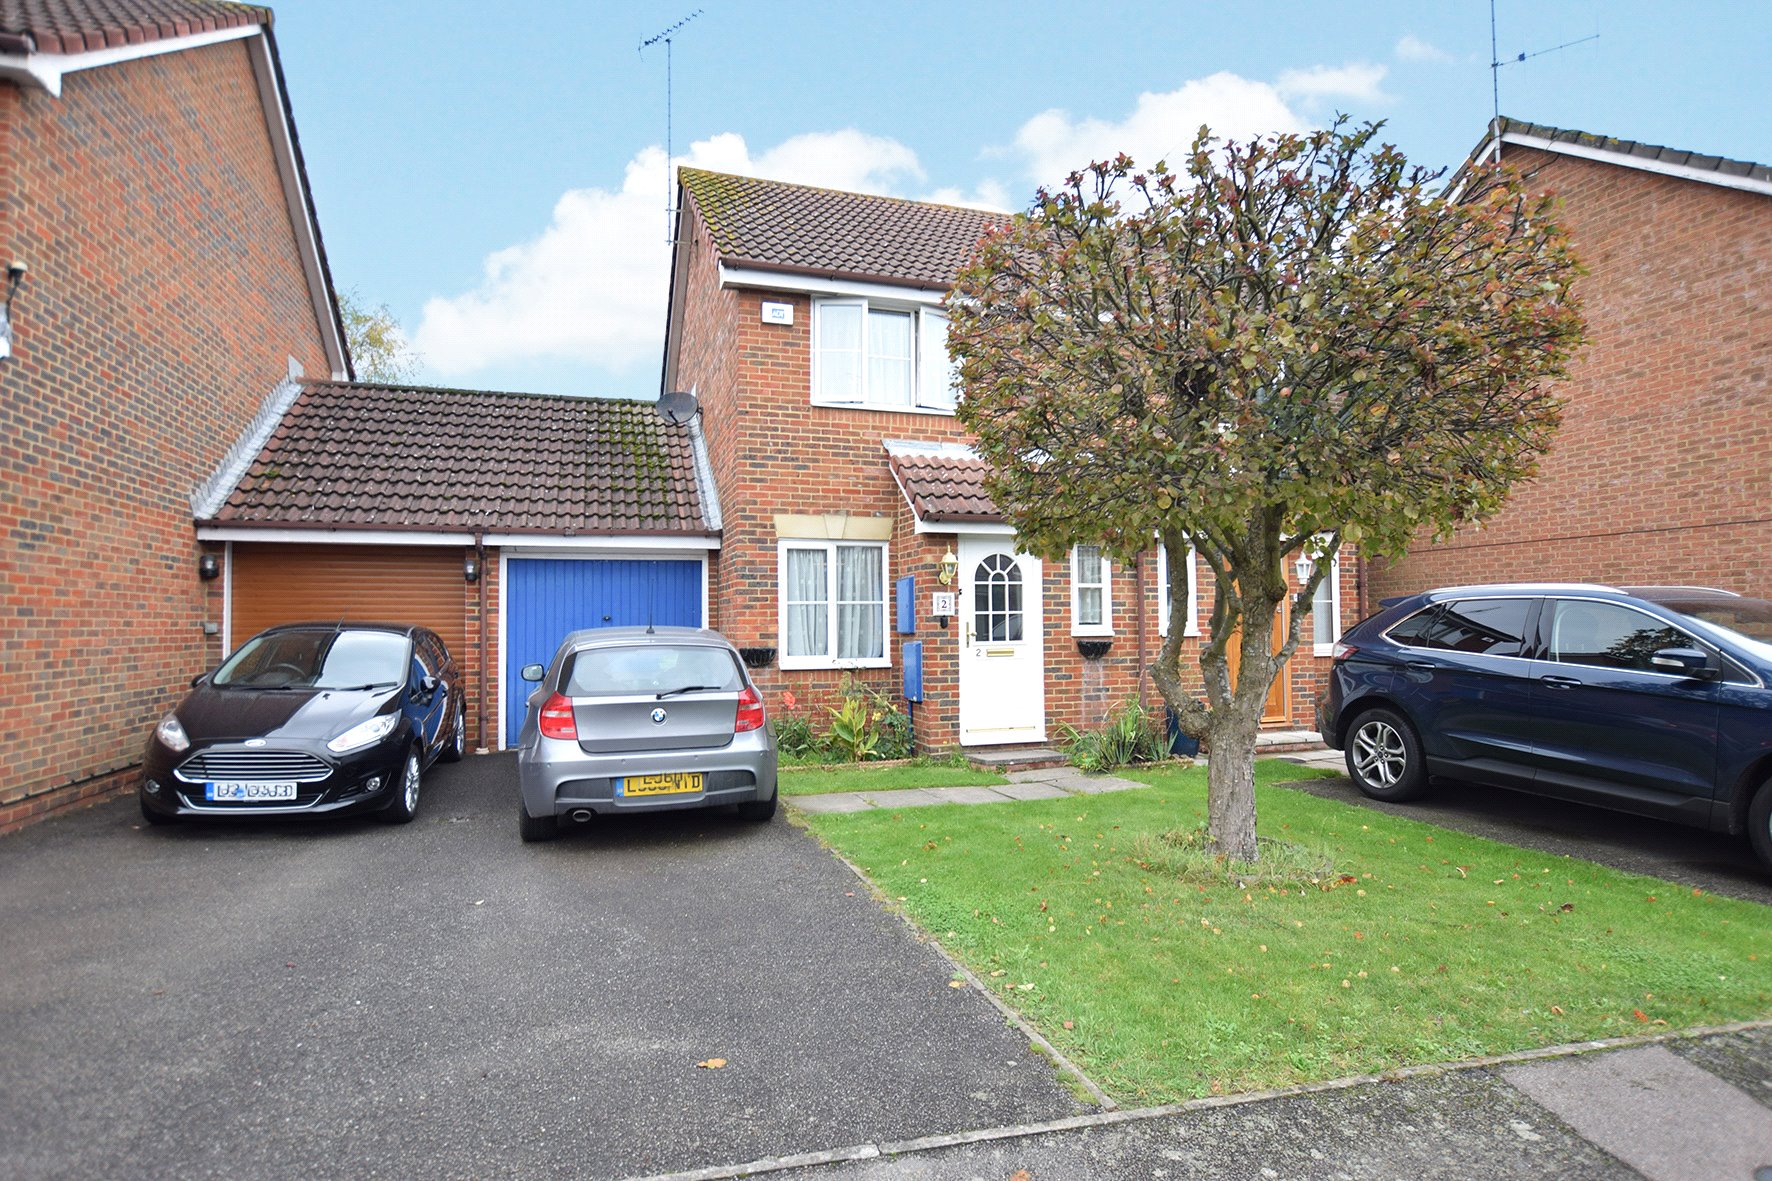 2 Bedrooms End Of Terrace House for sale in Culvercroft, Temple Park, Binfield, Berkshire, RG42